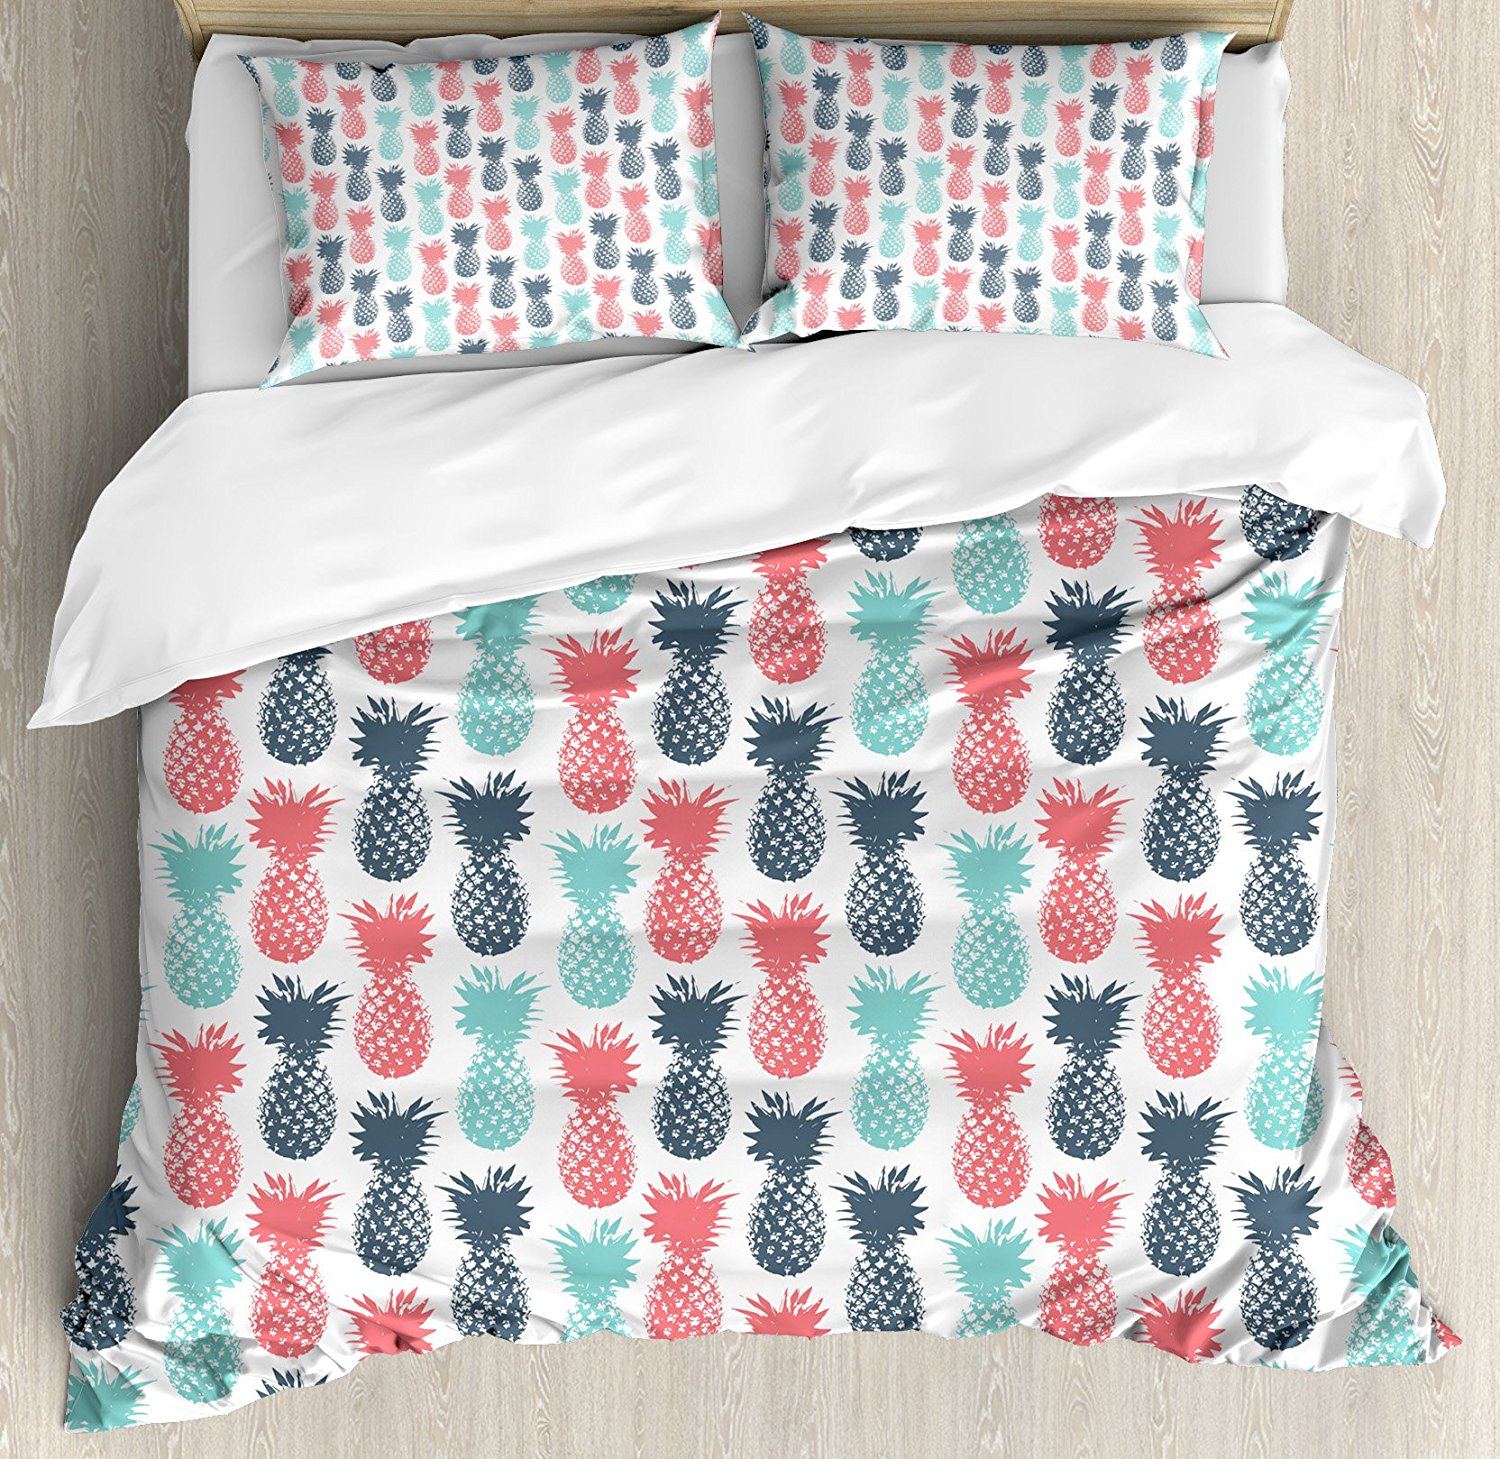 Pineapple Duvet Cover Set Island Pineapple Tropical Fruit Pattern Stamped Minimal Backdrop Pop Art Queen / Full